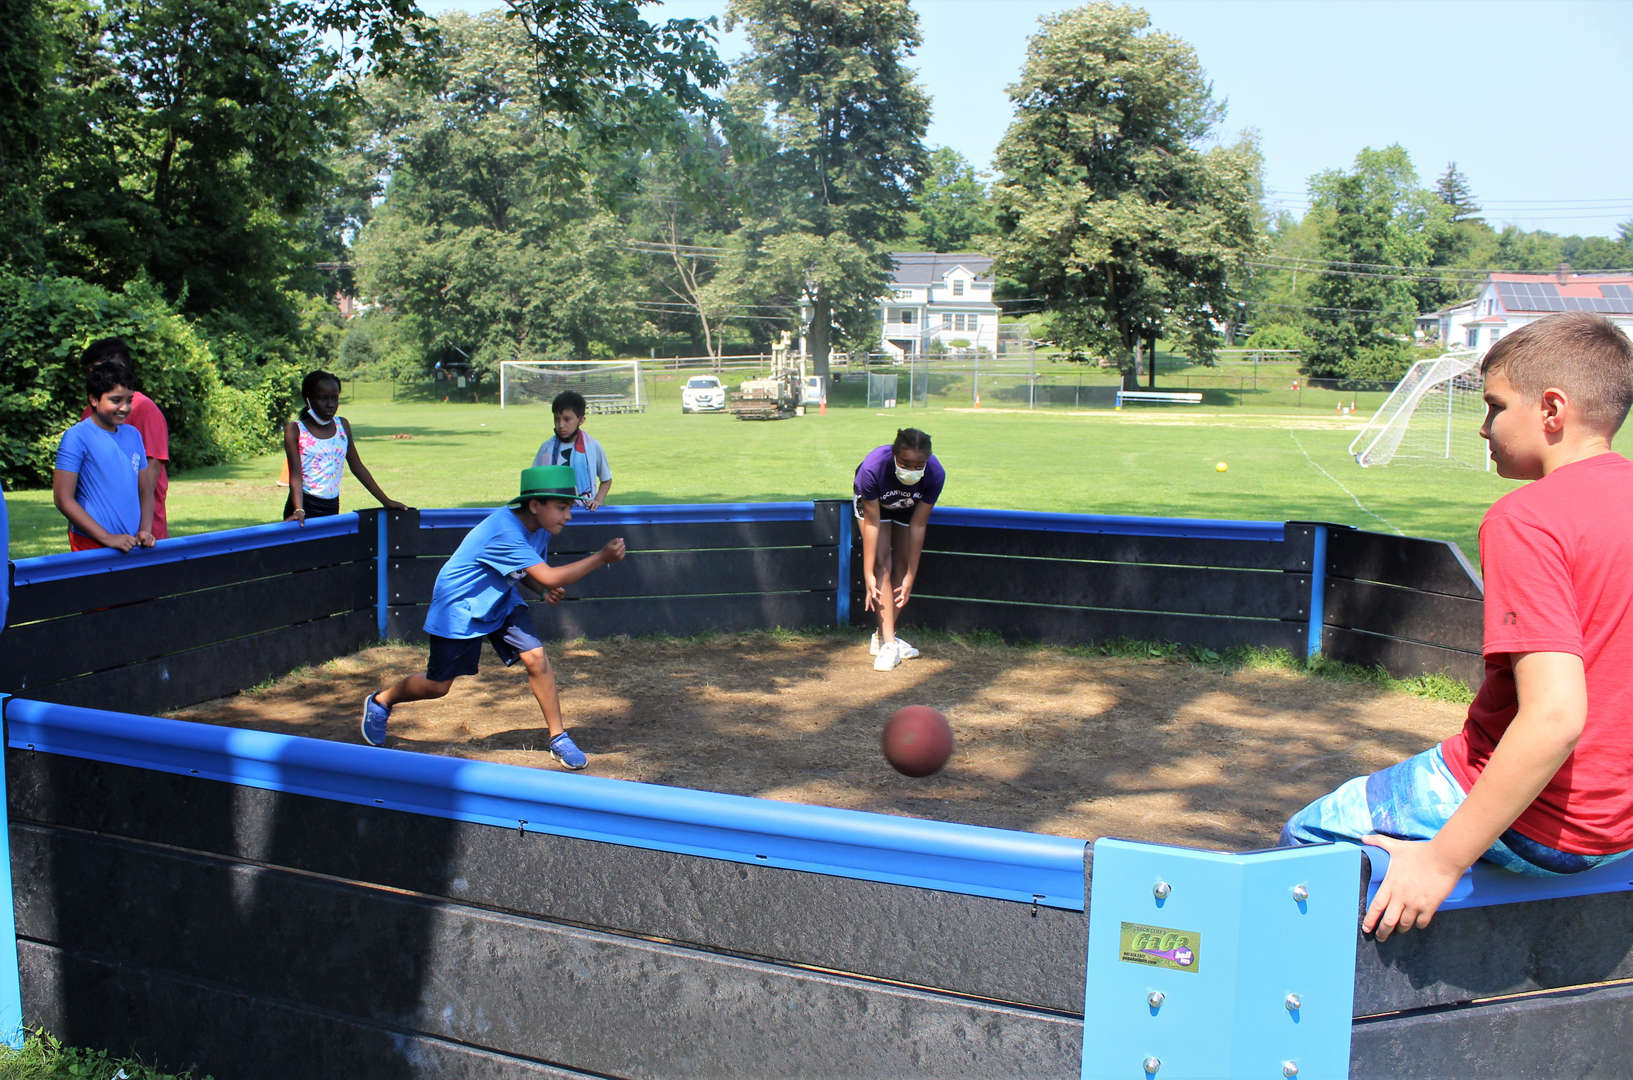 Campers play in the gaga ball pit.